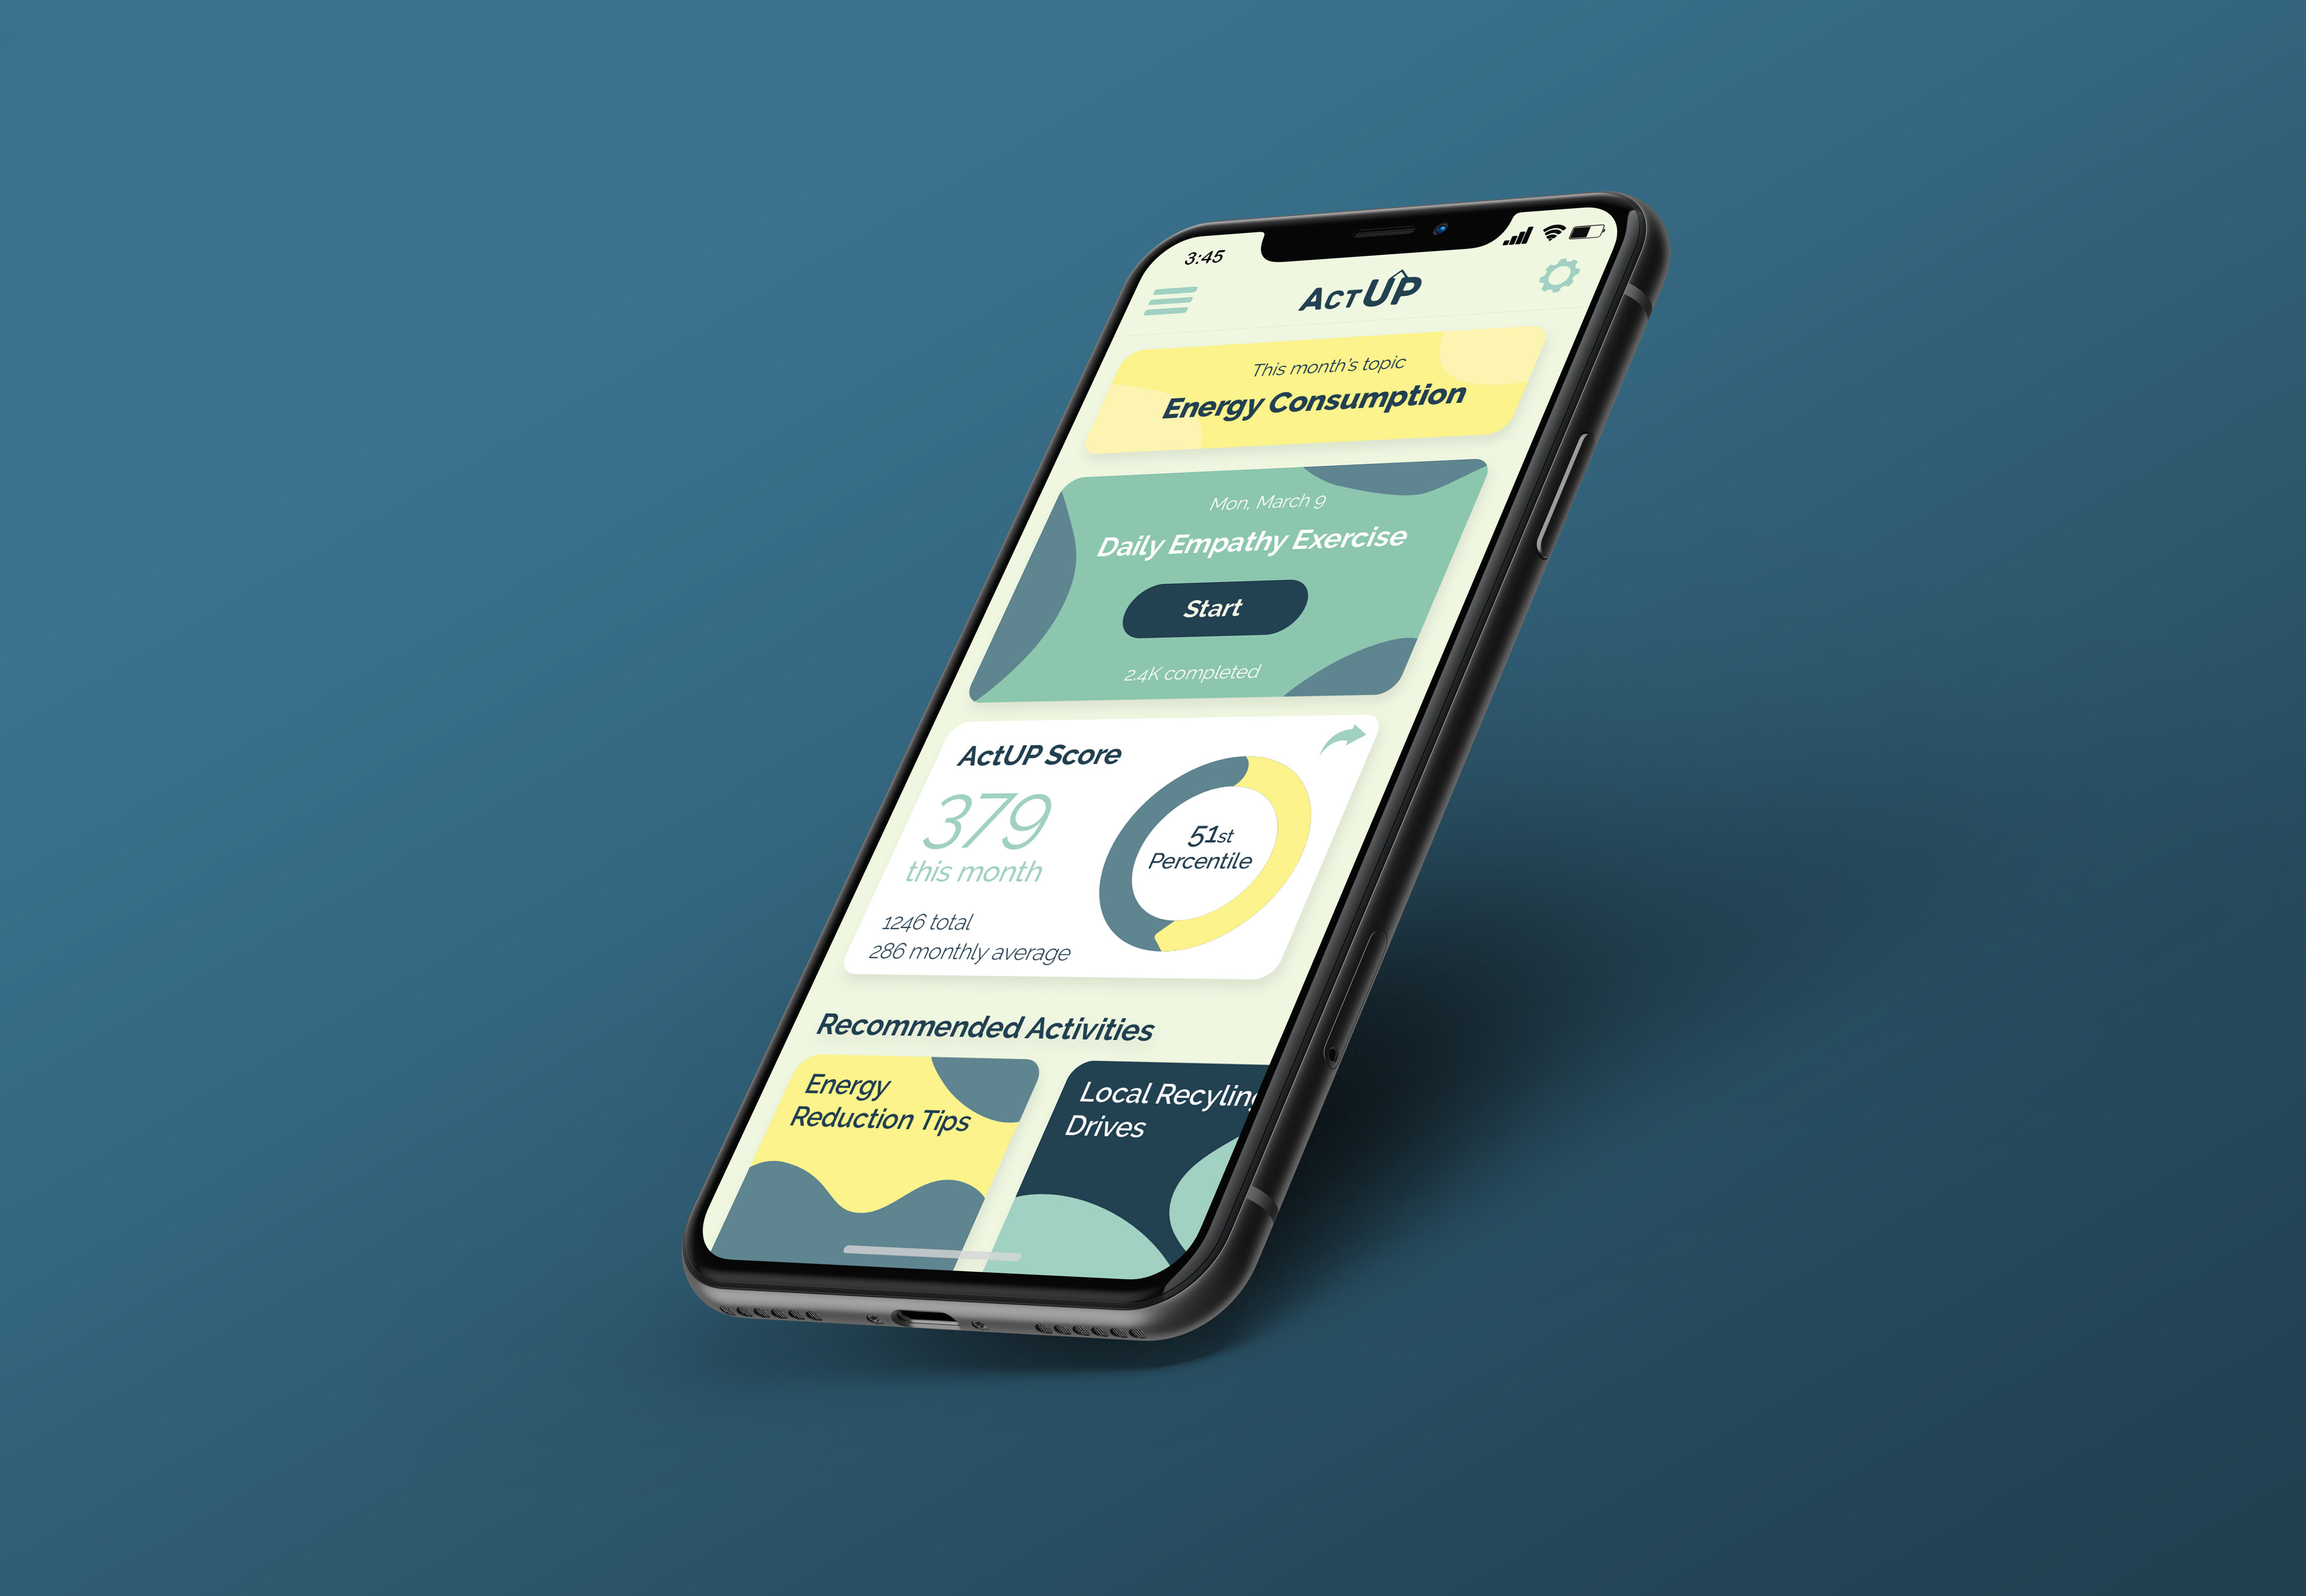 This home screen concept was created to showcase one way that for in-app actions based around the 3 pillars could be presented to a user.